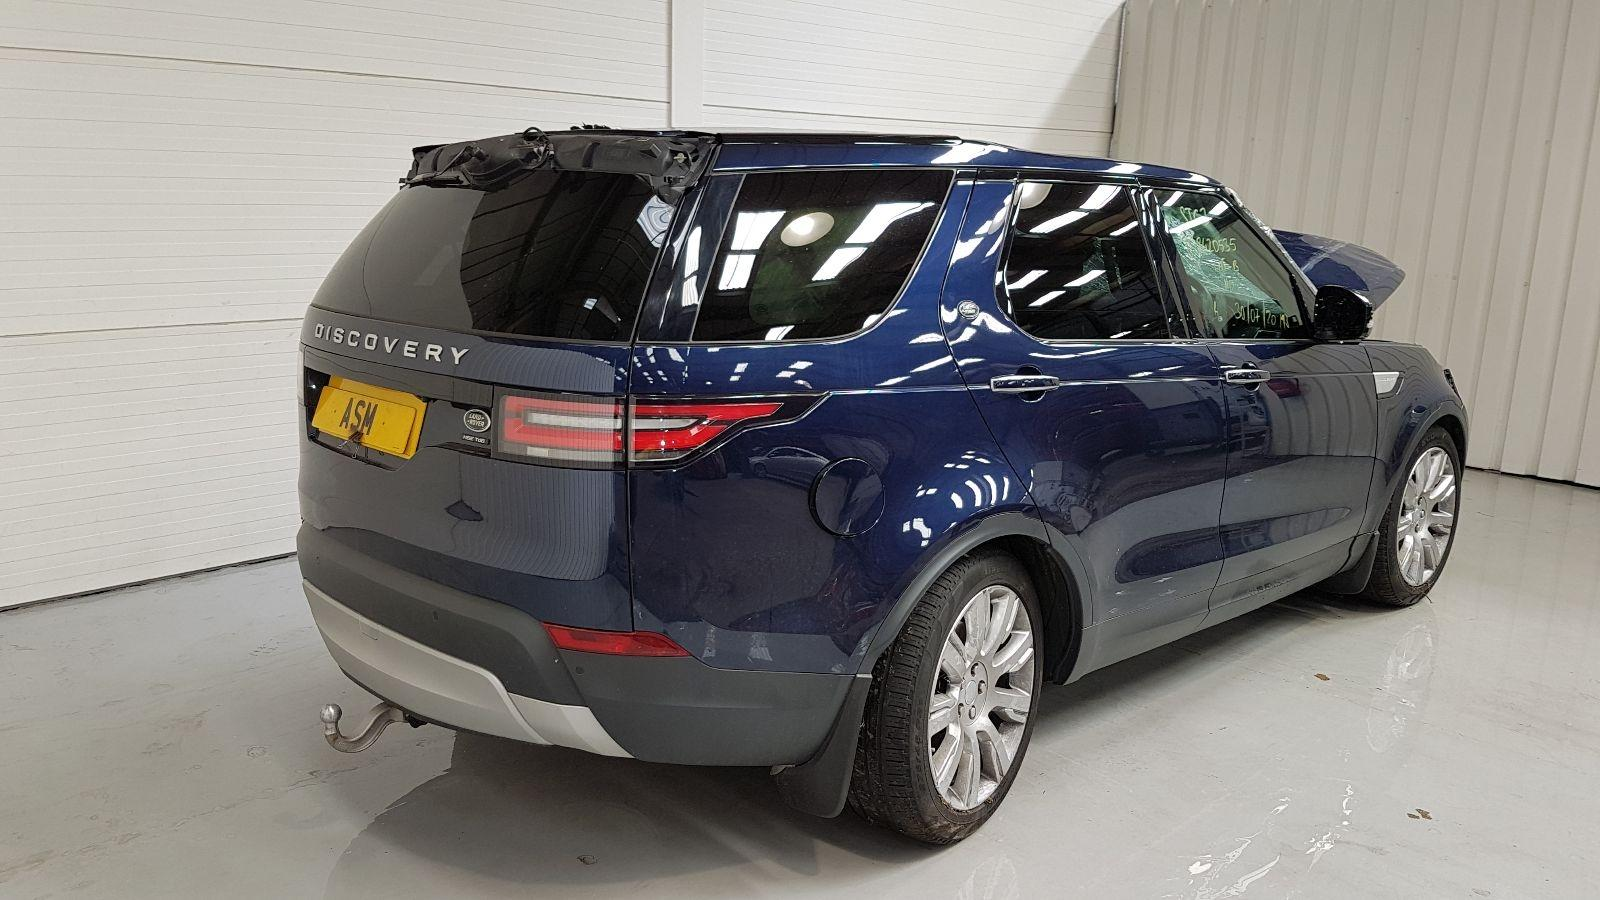 View Auto part Land Rover Discovery 2017 5 Door Estate